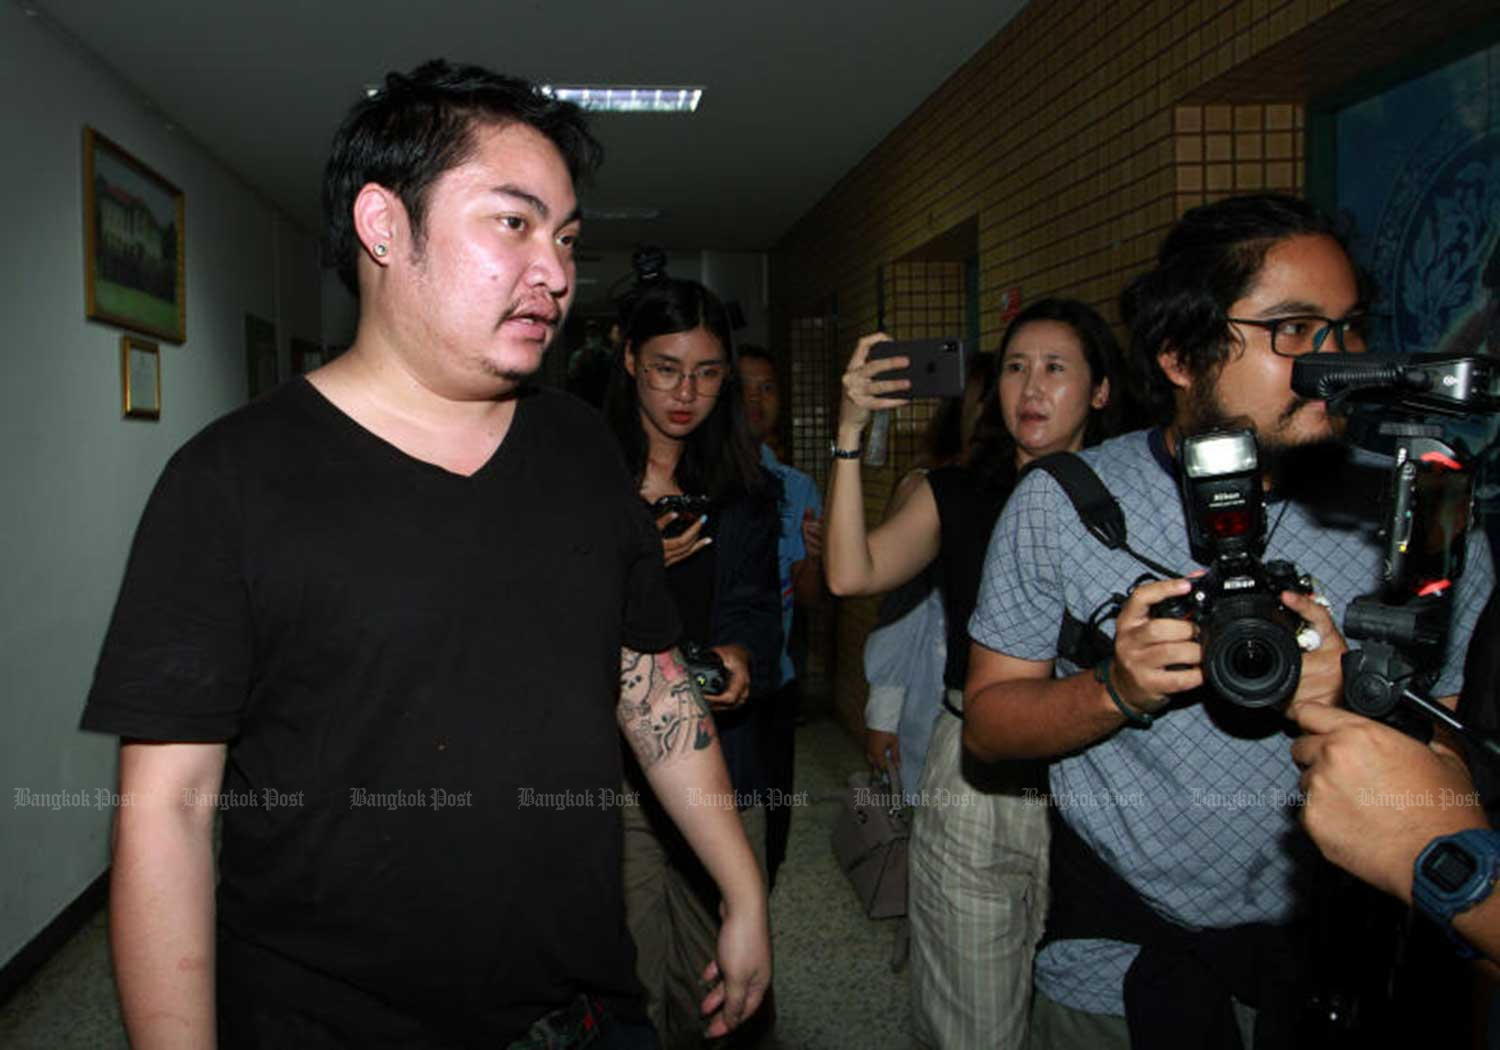 Chaiyaphon Panna, owner of the Bang Bua Thong house in Nonthaburi province, arrives at Bukkhalo police station on Sept 23, to give a statement. Young product presenter Lunlabelle, hired to serve drinks at his party on Sept 16, was later found dead at a Bangkok condominium. (File photo)